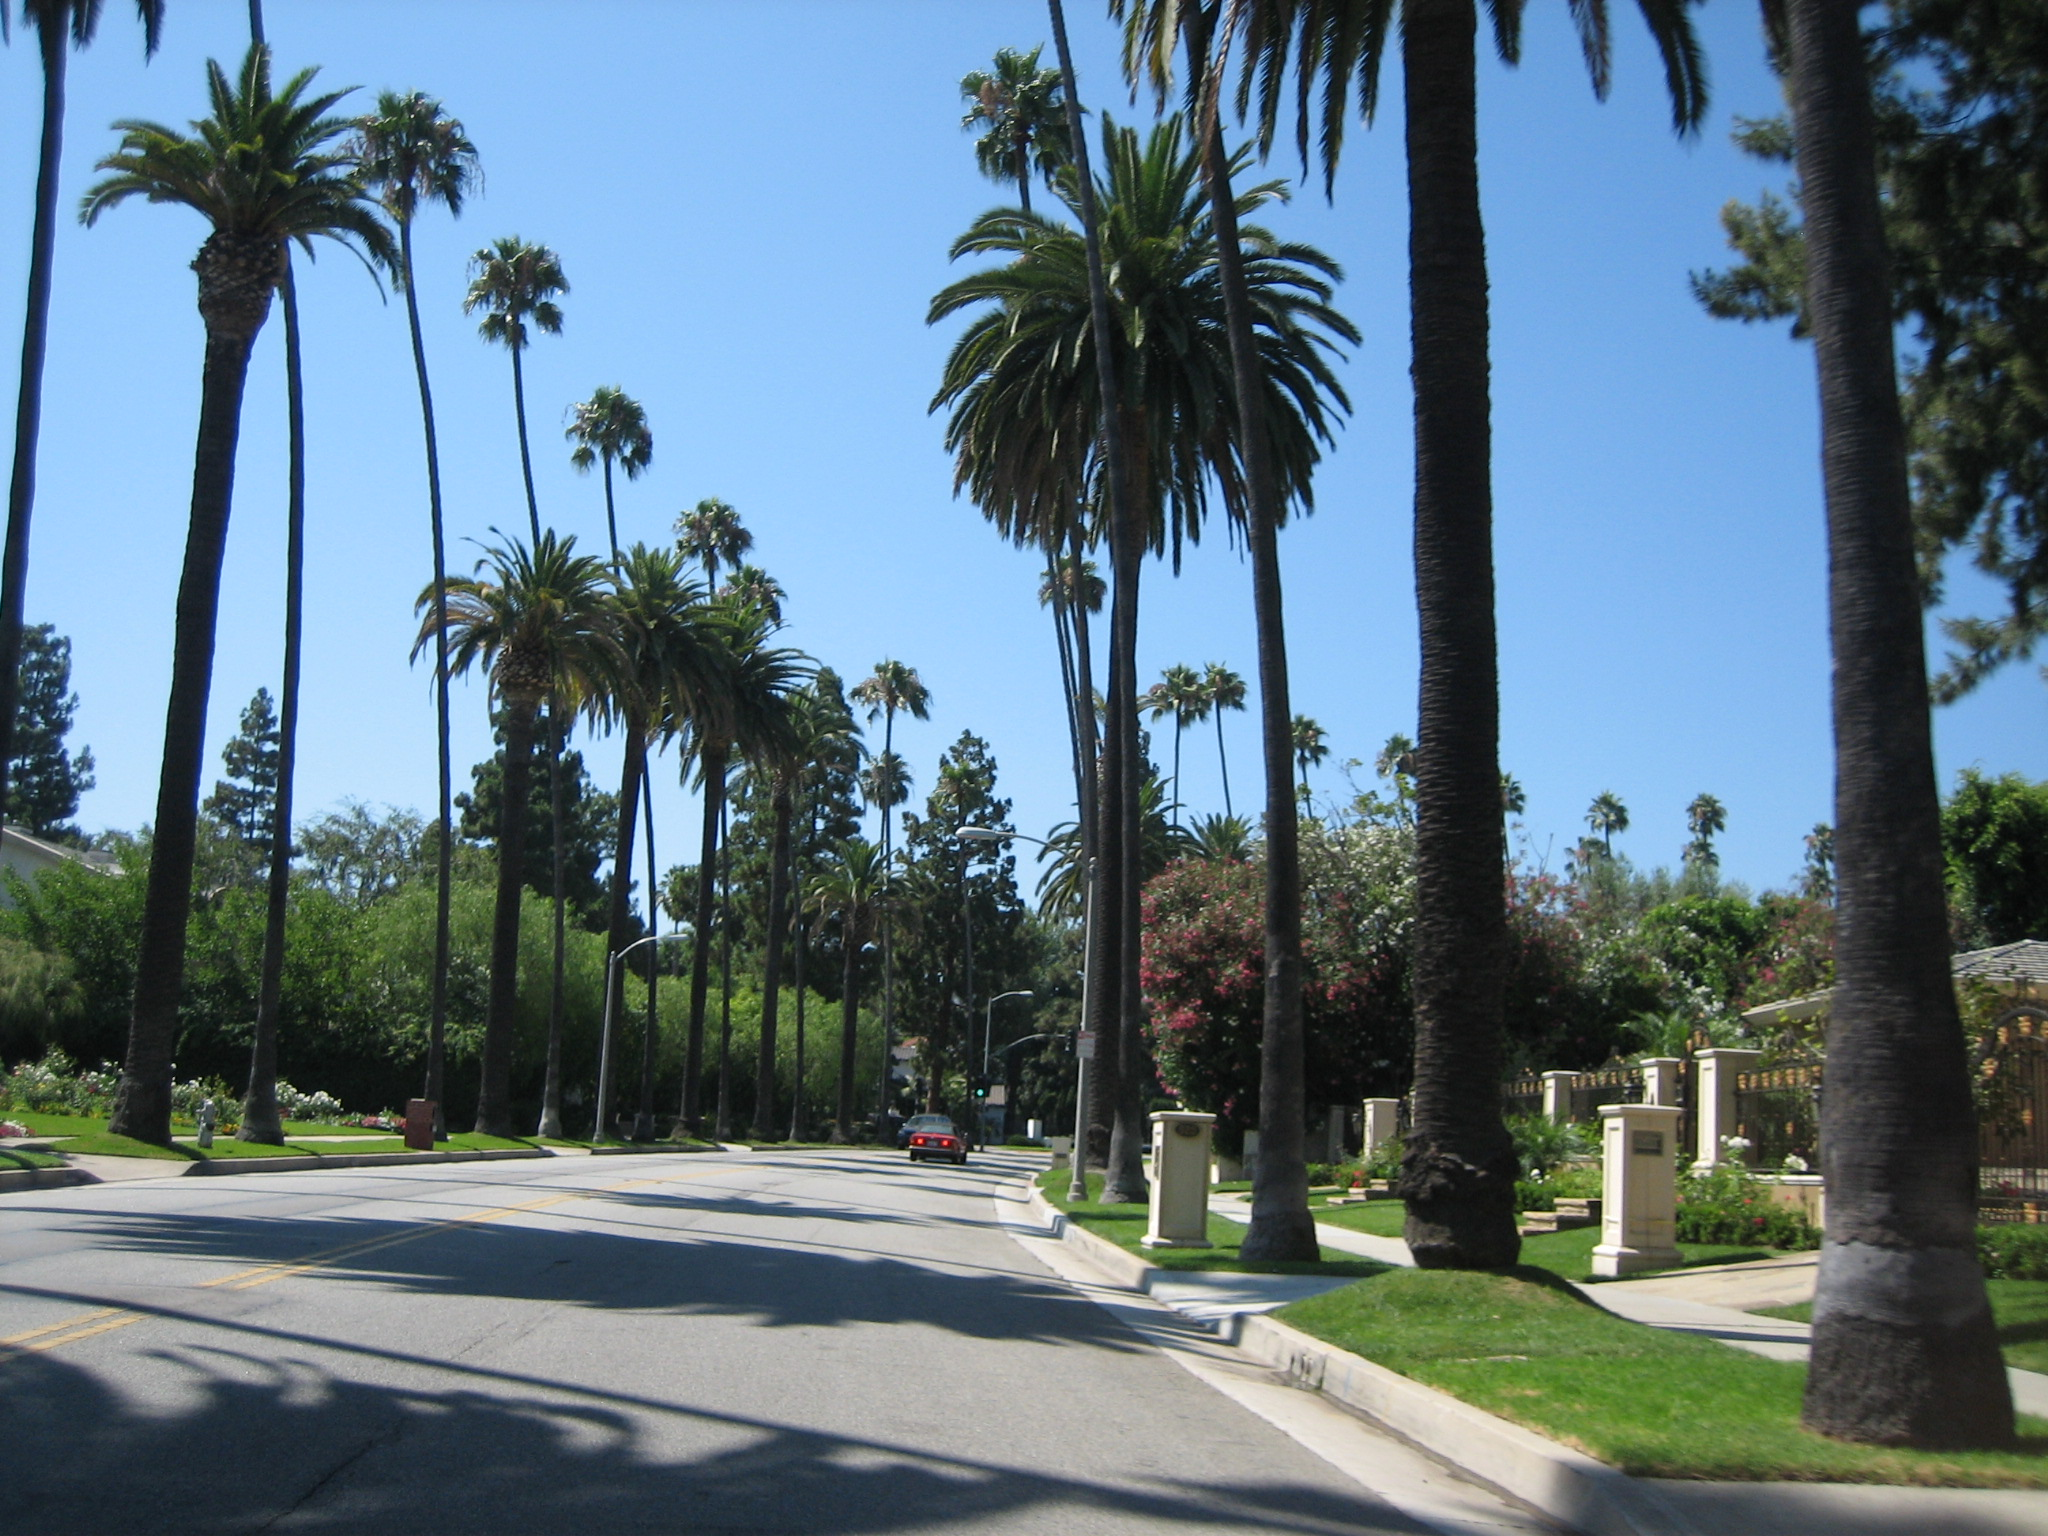 File:Beverly Hills11.JPG - Wikipedia